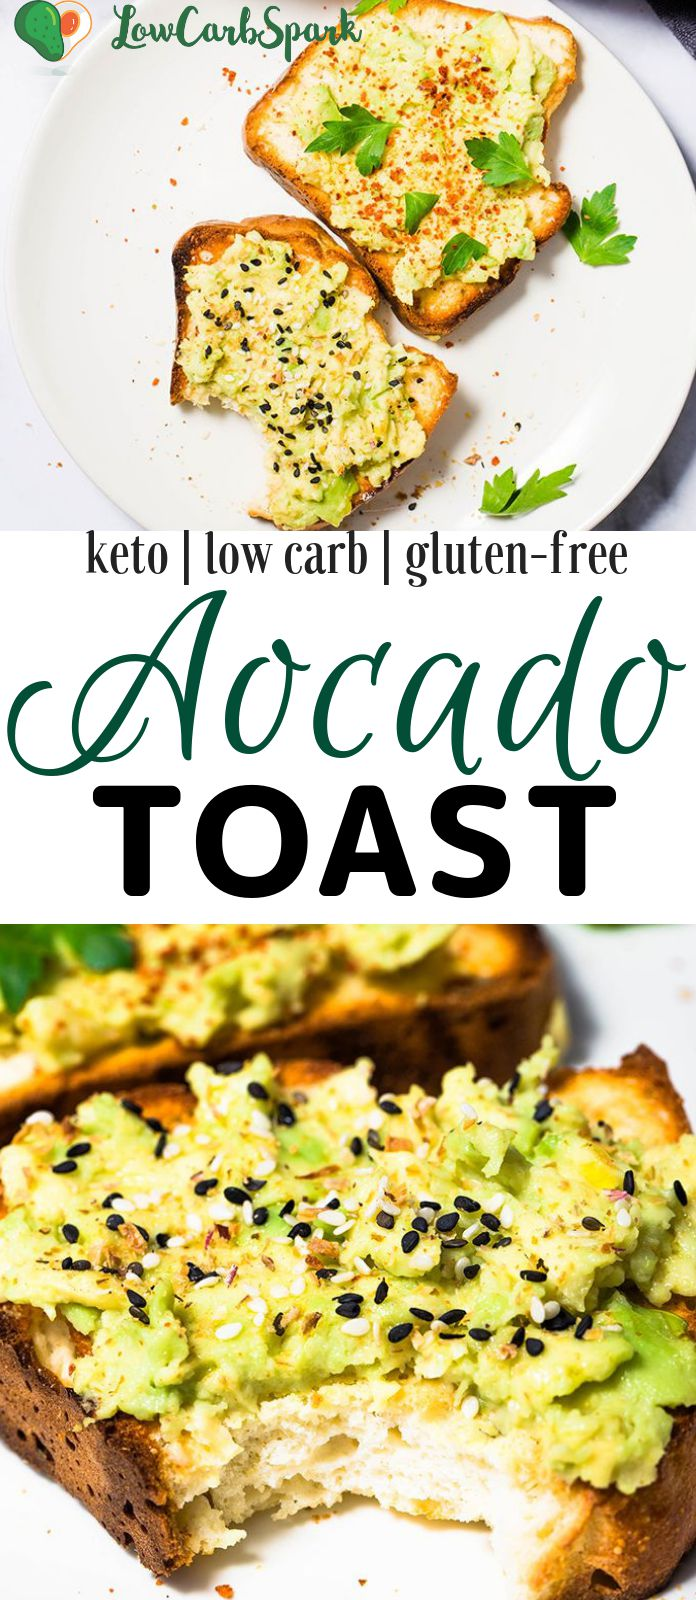 This summer I'm going to enjoy these keto avocado toasts. It's an incredibly simple recipe perfect for a delicious breakfast or a snack and can be customized in many different ways for a tasty experience.  #ketodiet #ketoavocadotoast #ketobreakfast #avocado